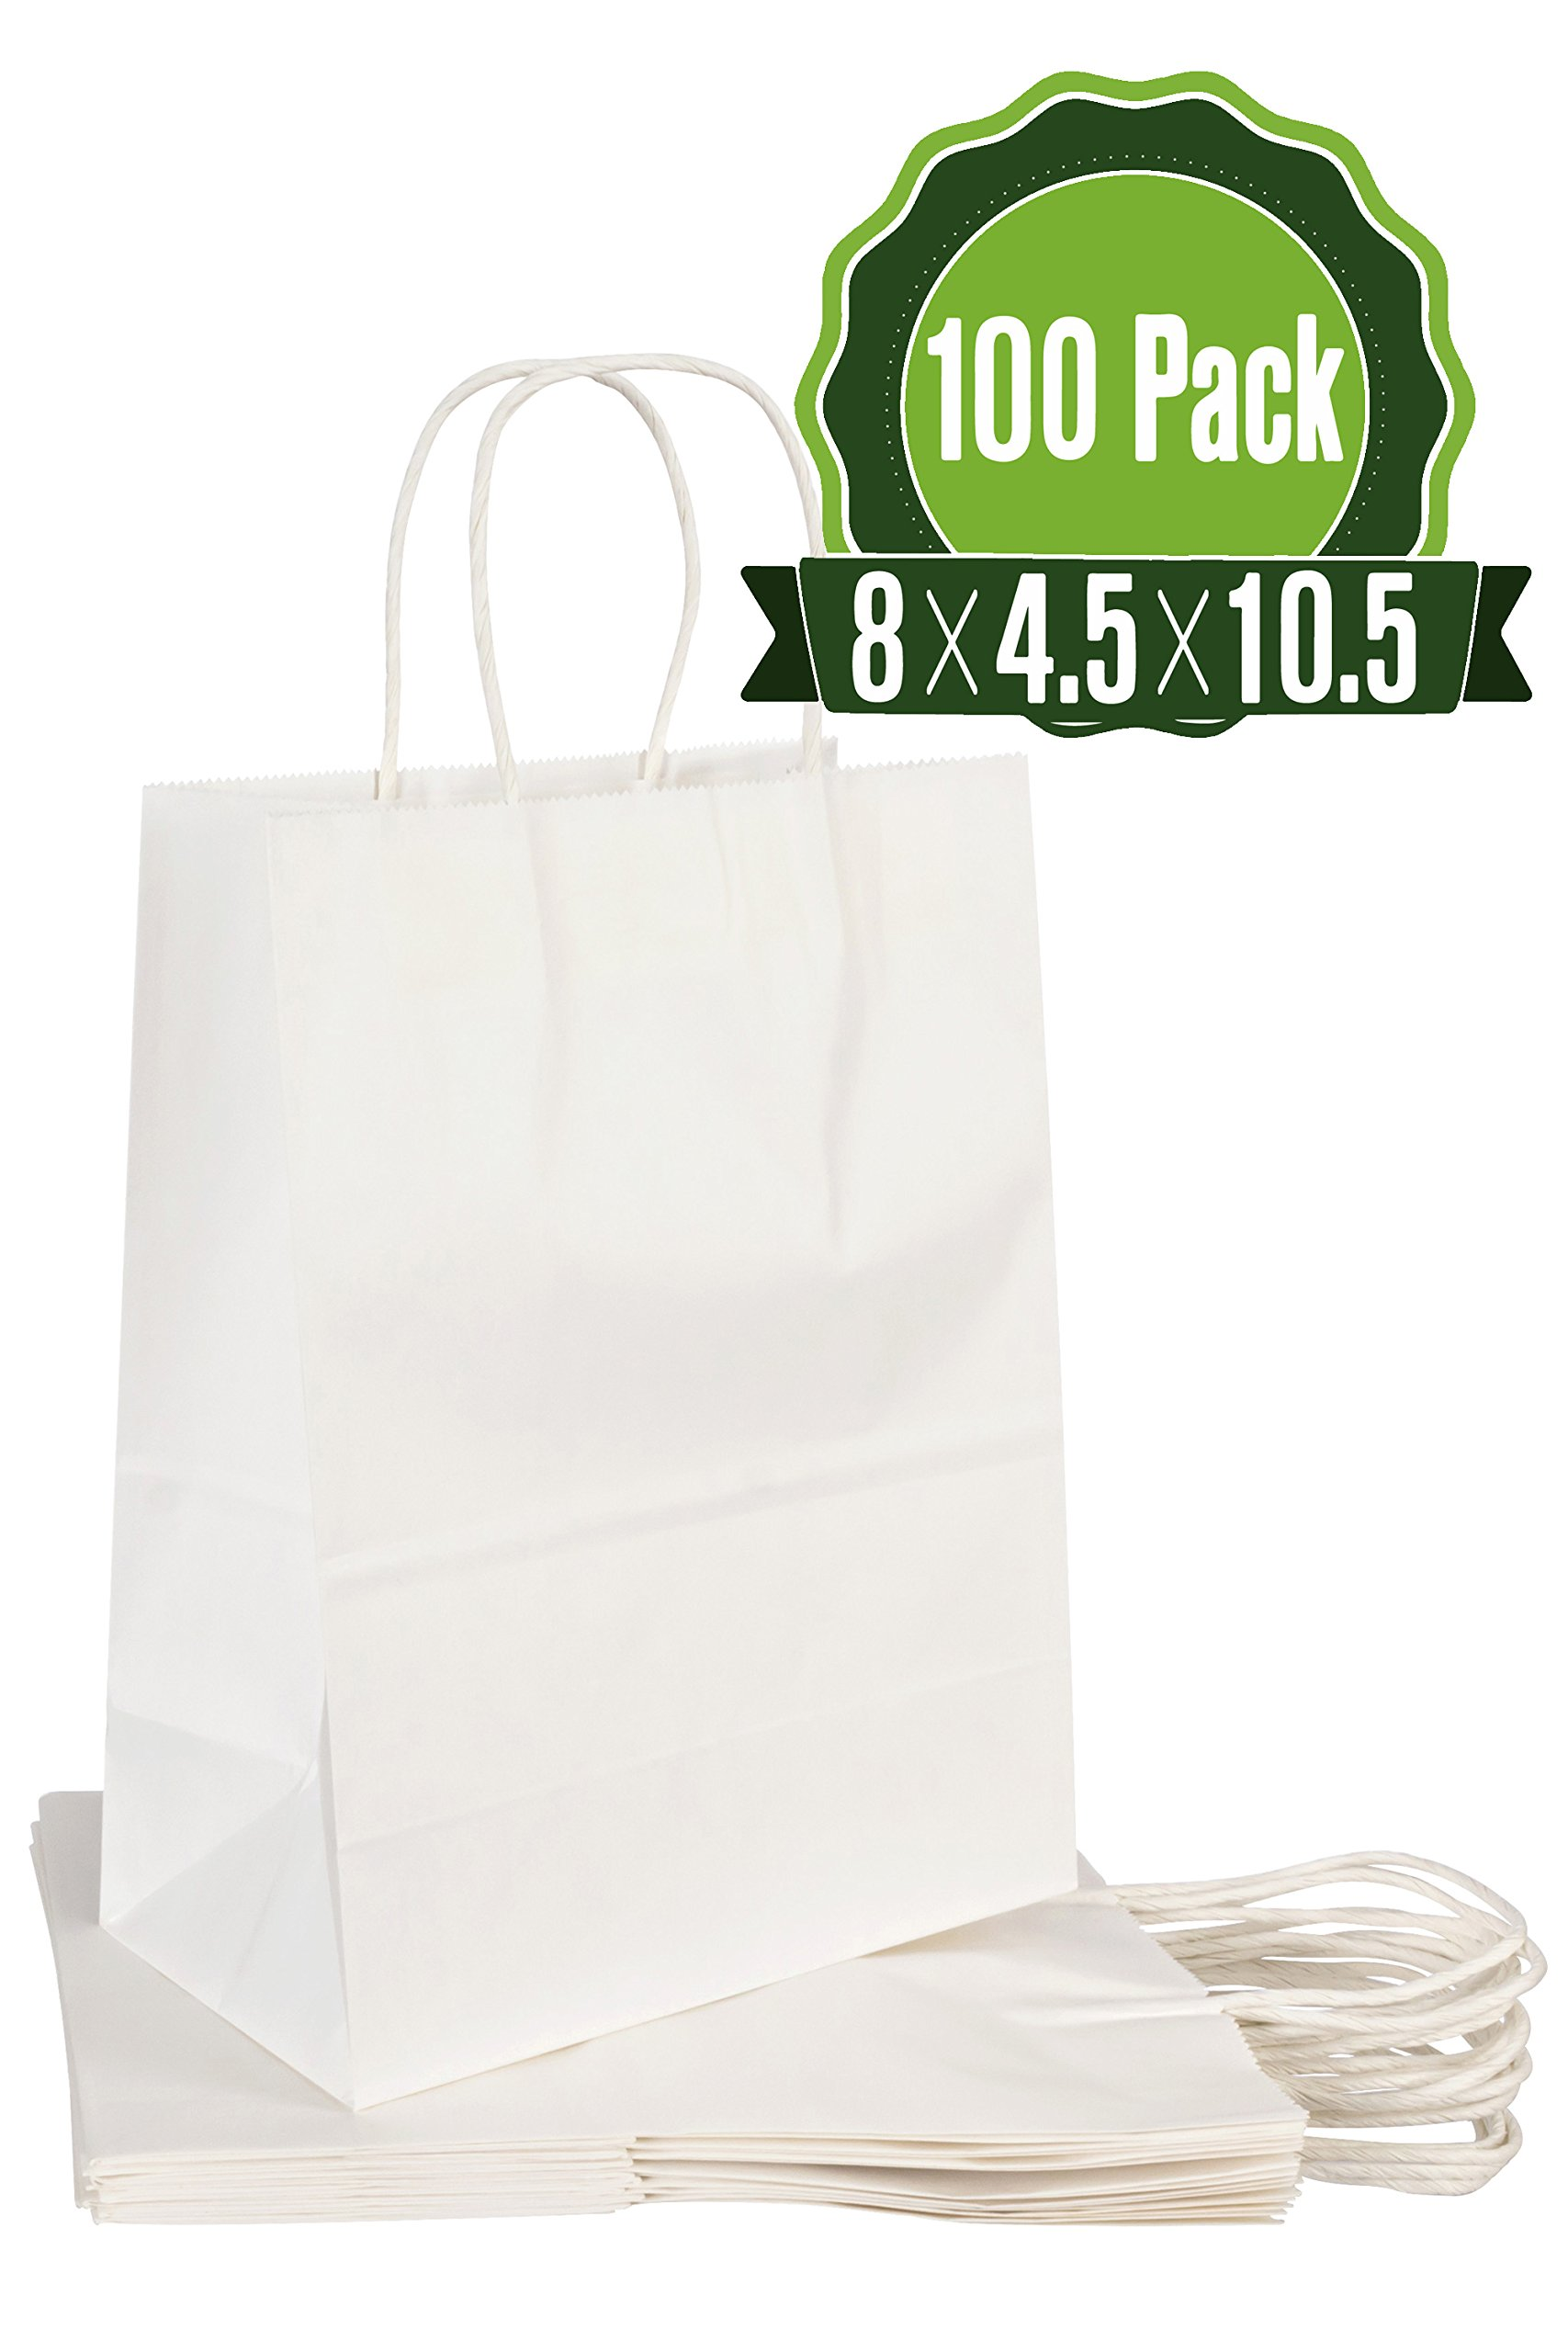 White Kraft Paper Gift Bags with Handles, 100 Pcs 8x4.5x10.5 Shopping, Packaging, Retail, Party, Craft, Gifts, Wedding, Recycled Merchandise Bag